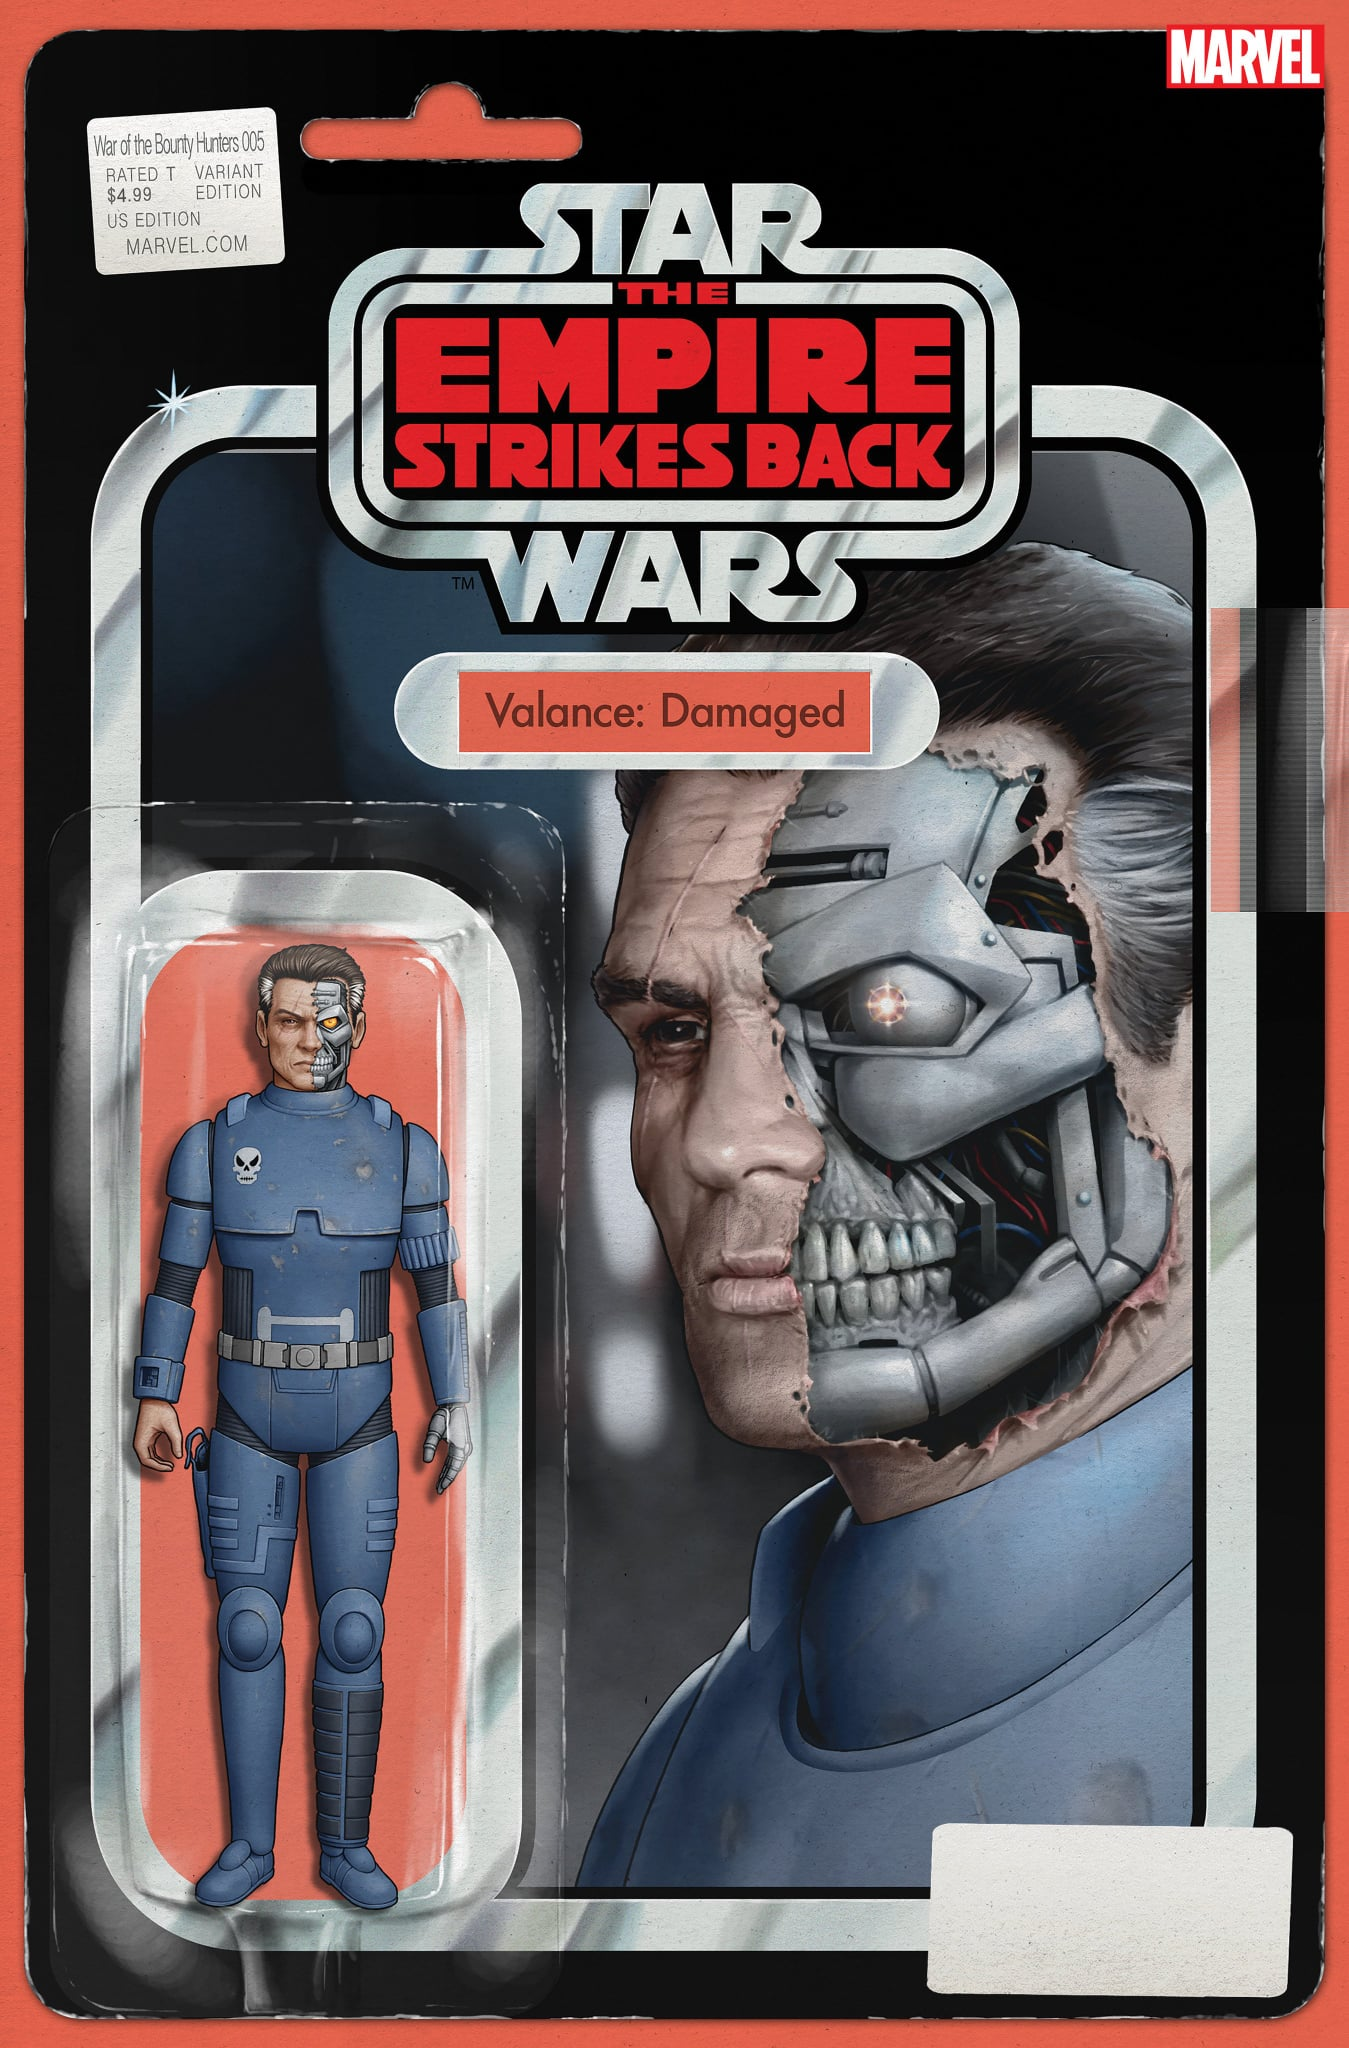 Star Wars: War of the Bounty Hunters 5 - Action Figure Variant